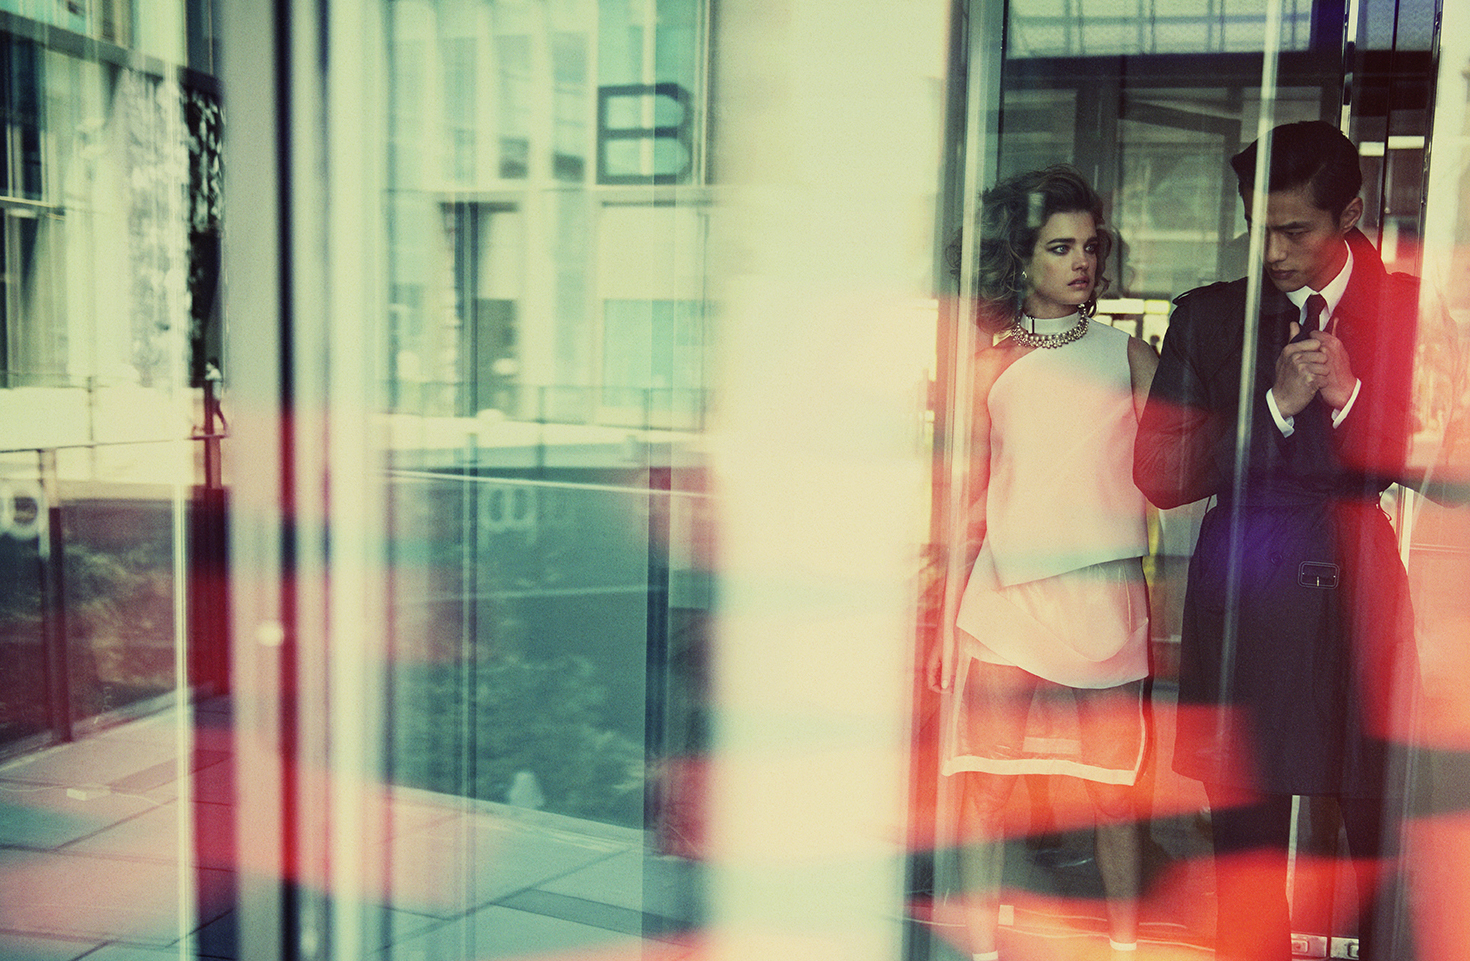 A stylish image of a couple in a hotel lobby